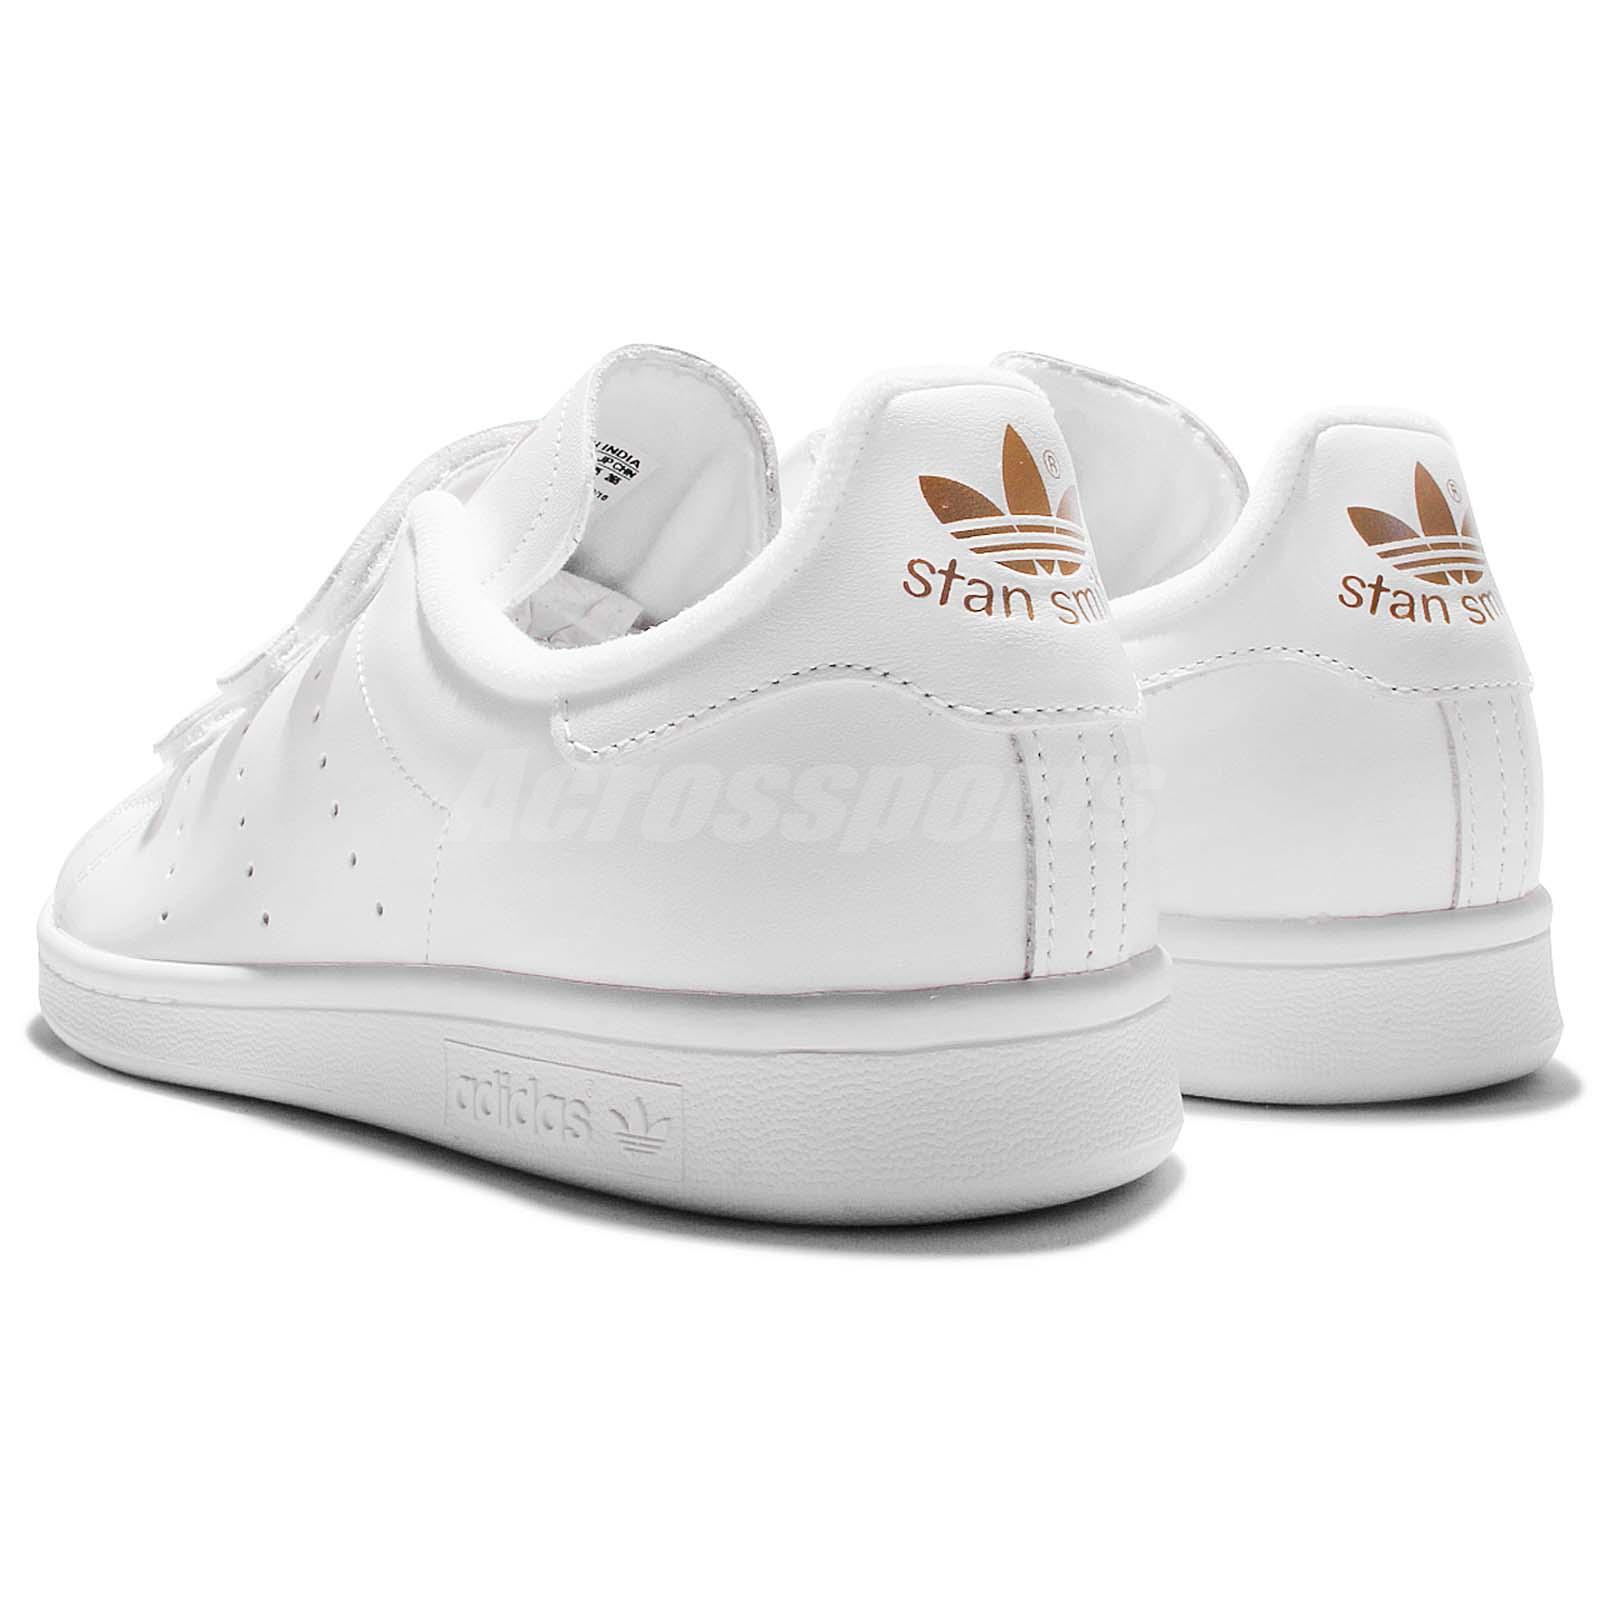 White Shoes For Men India